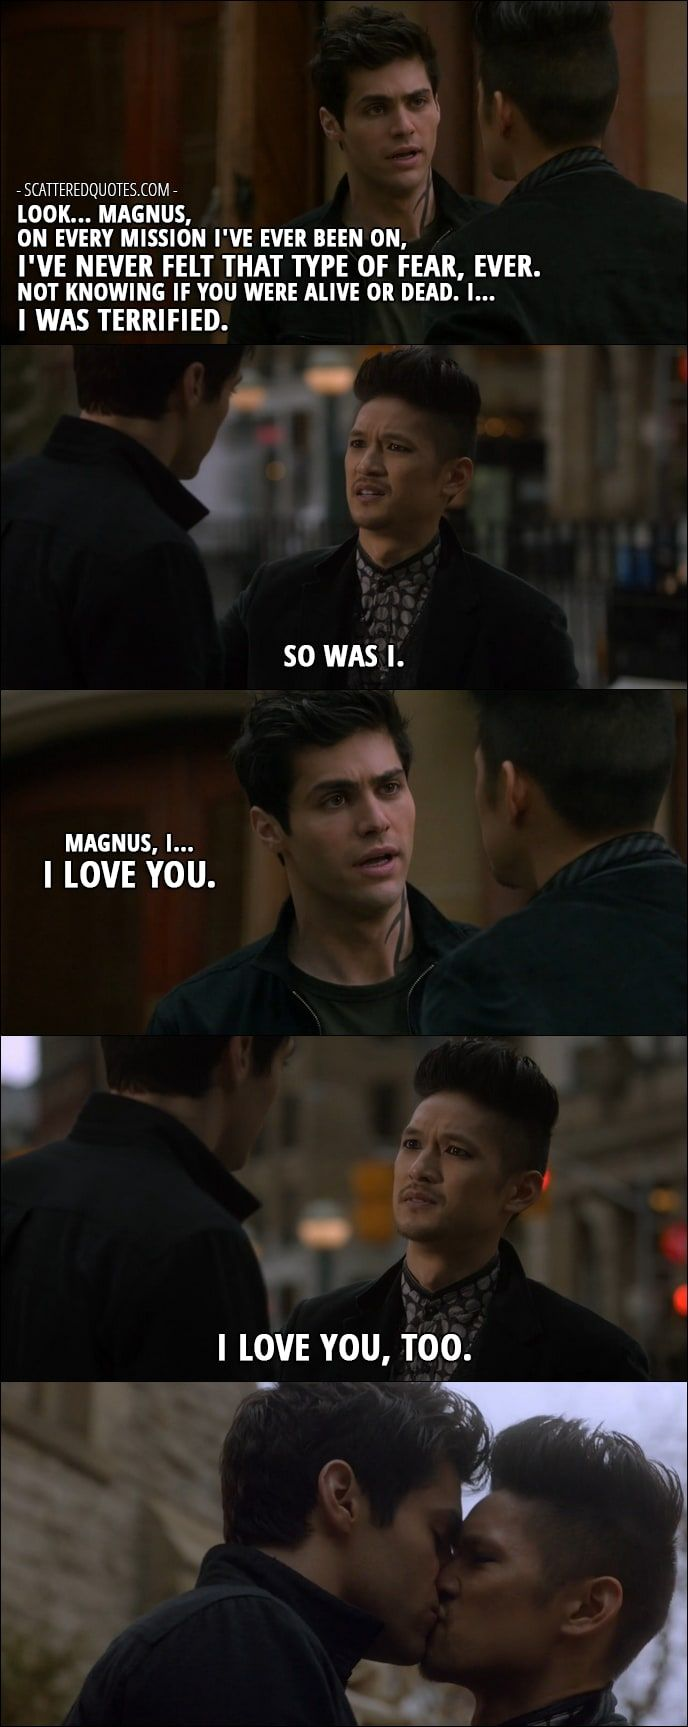 Quote from Shadowhunters 2x10 │ Alec Lightwood: Look… Magnus, on every mission I've ever been on, I've never felt that type of fear, ever. Not knowing if you were alive or dead. I… I was terrified. Magnus Bane: So was I. Alec Lightwood: Magnus, I… I love you. Magnus Bane: I love you, too.